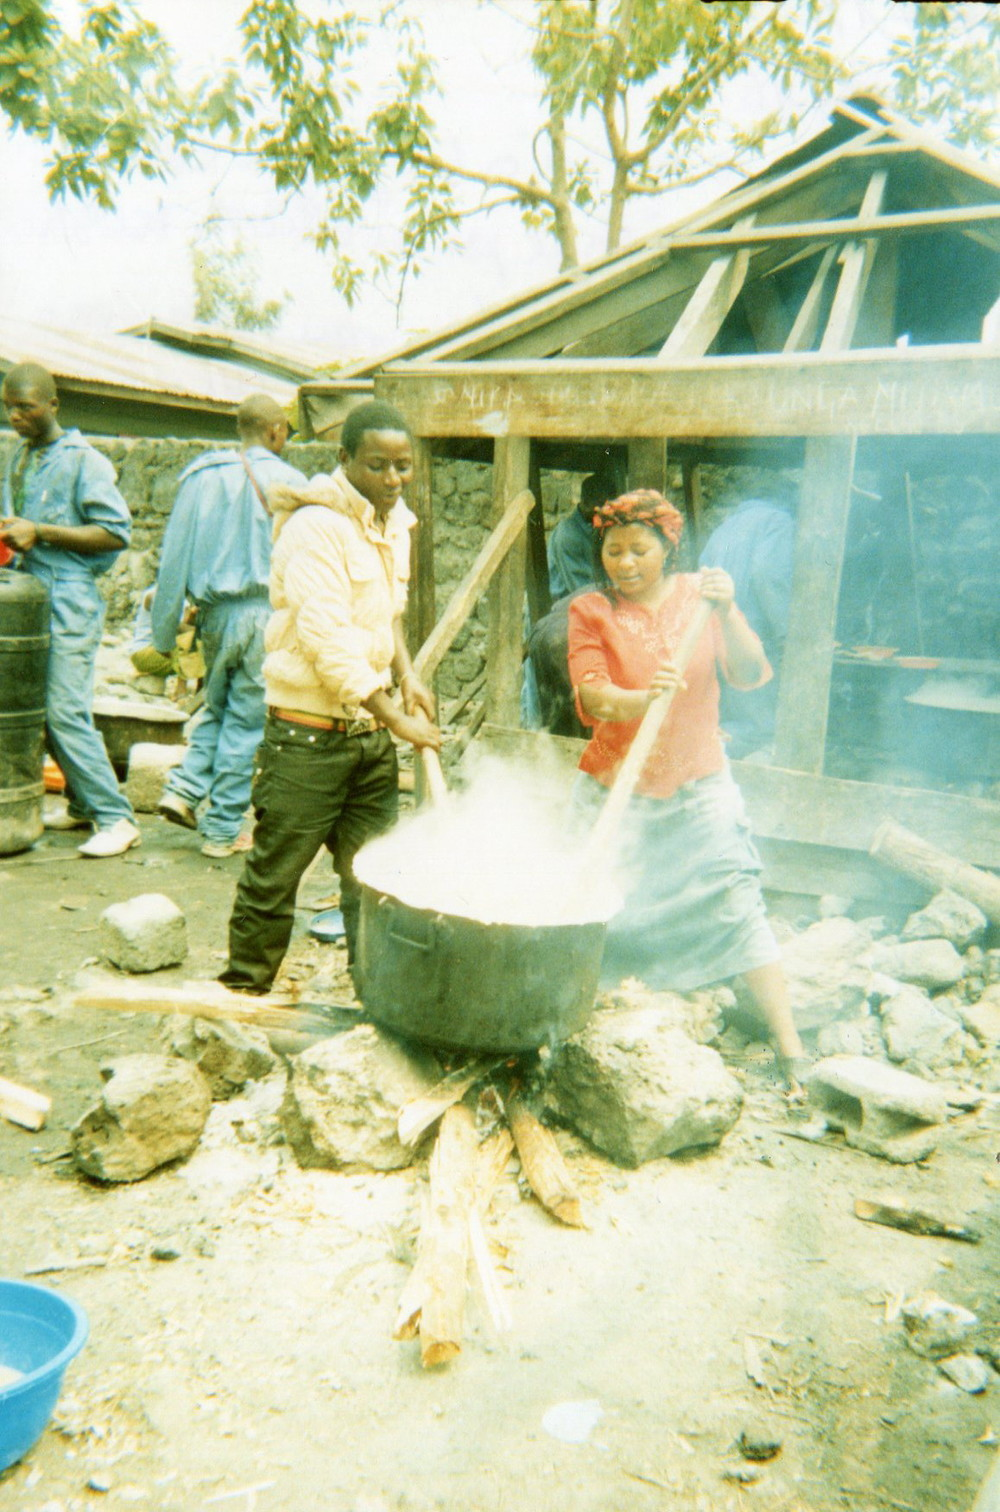 I am punished because of bad behavior and smoking (have  to cook and make ugali for the school).